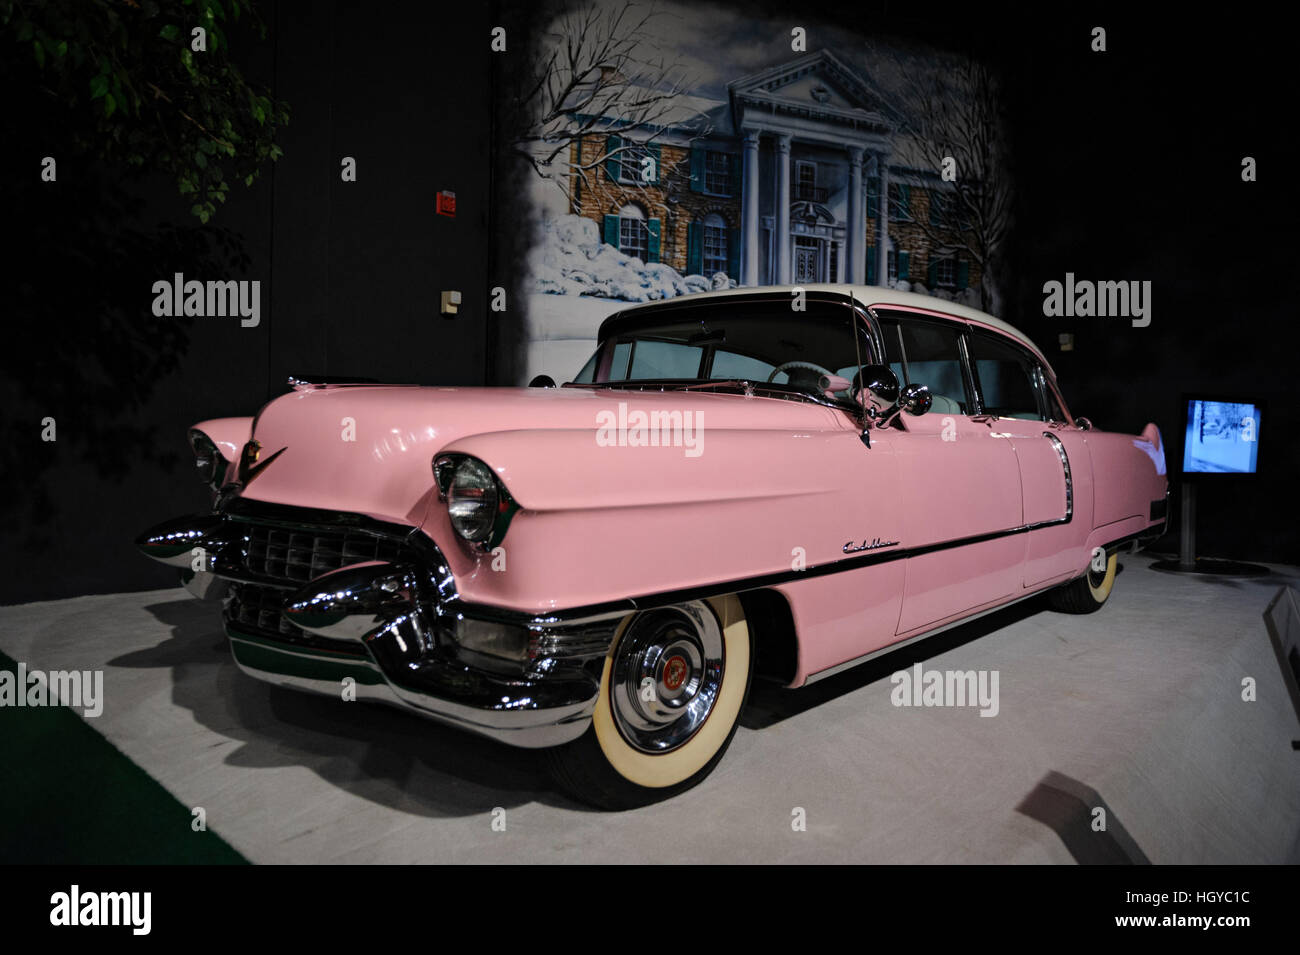 Classic American Car On Display At The Elvis Presley Automotive - Classic car museums in usa